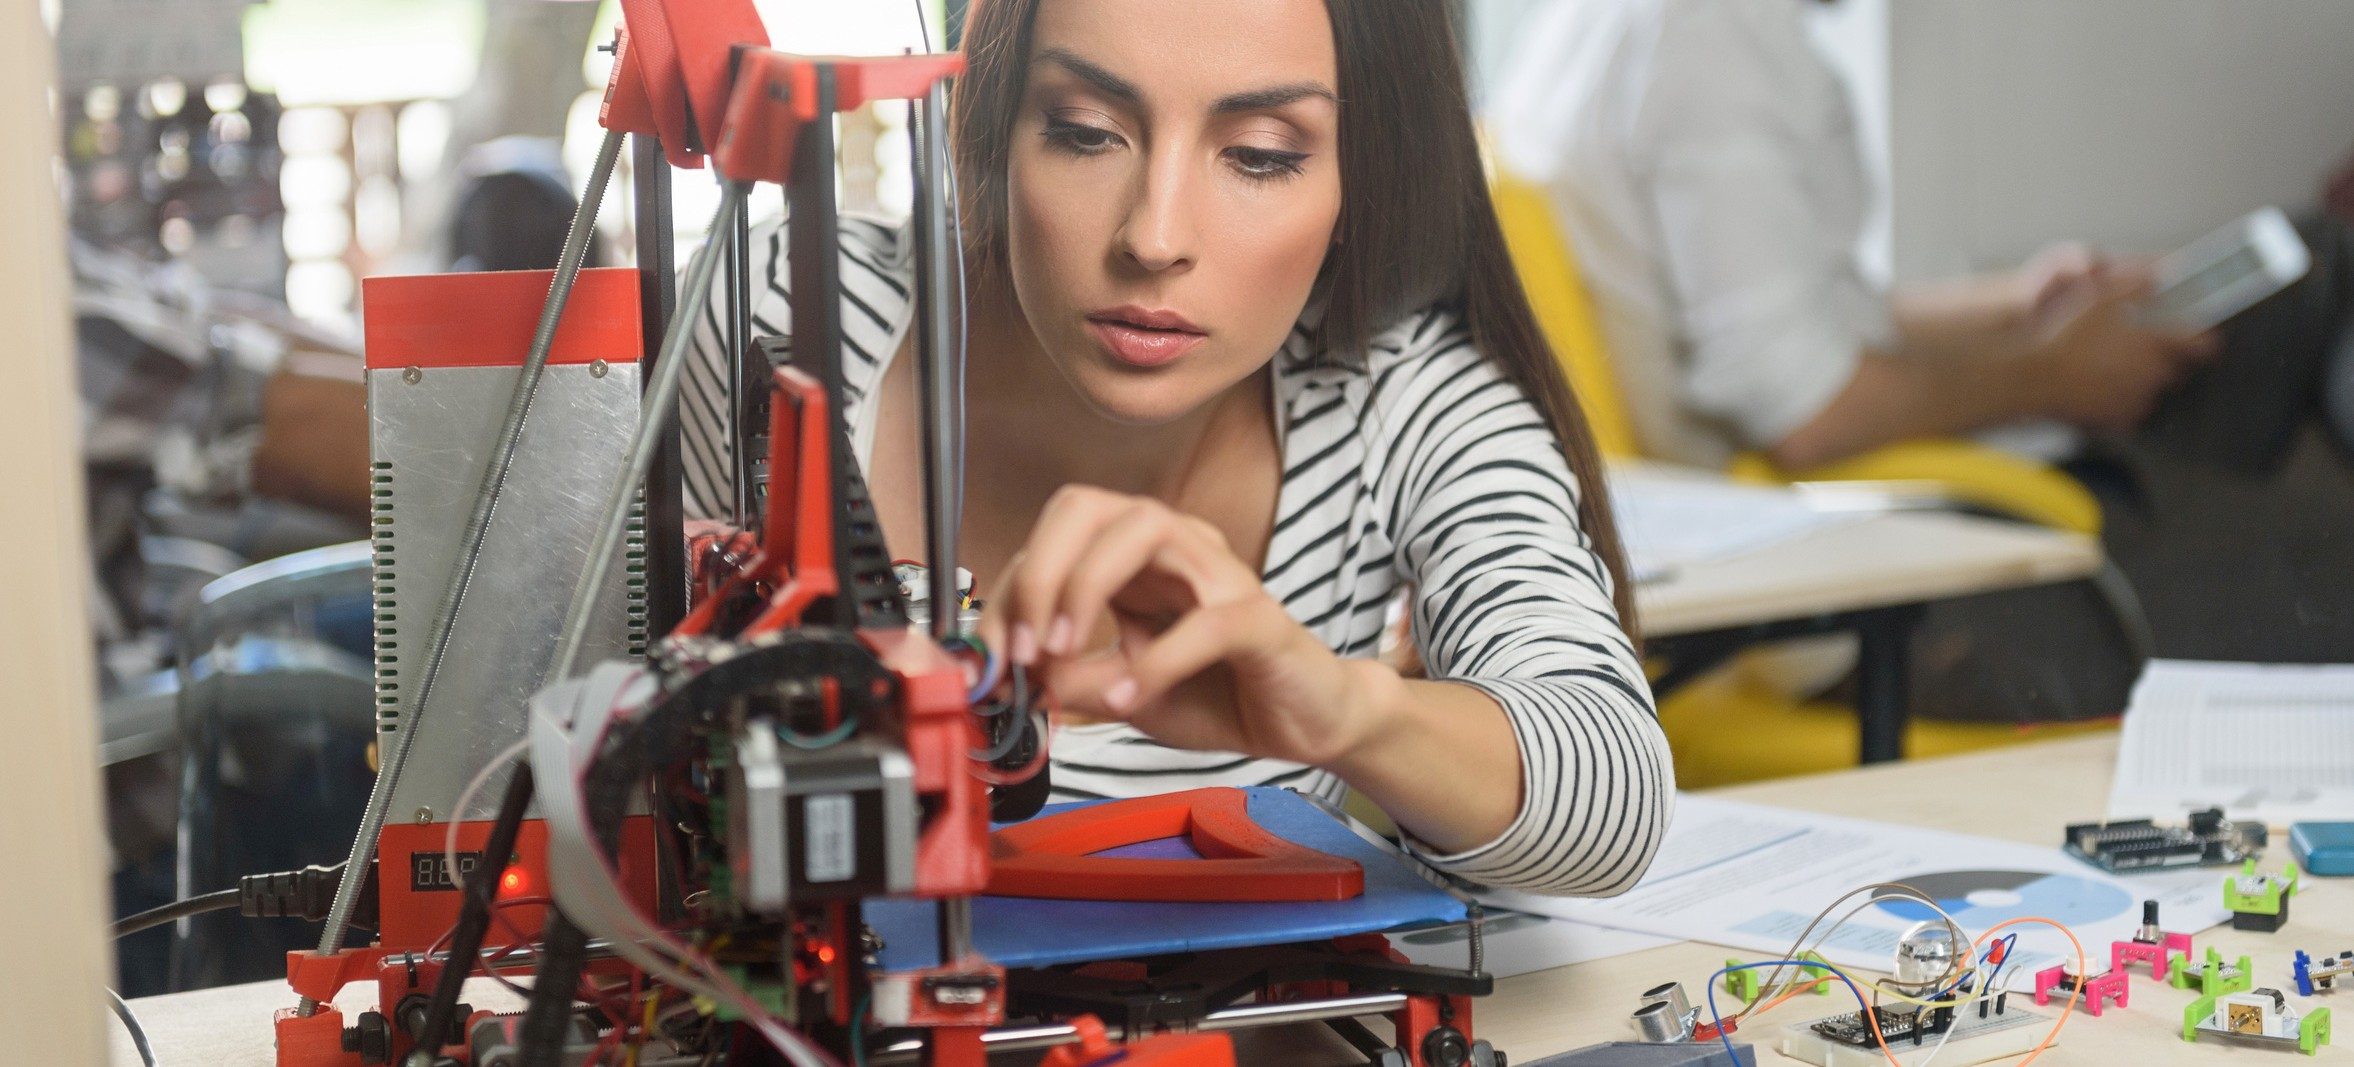 Professional female engineer working with 3d printing